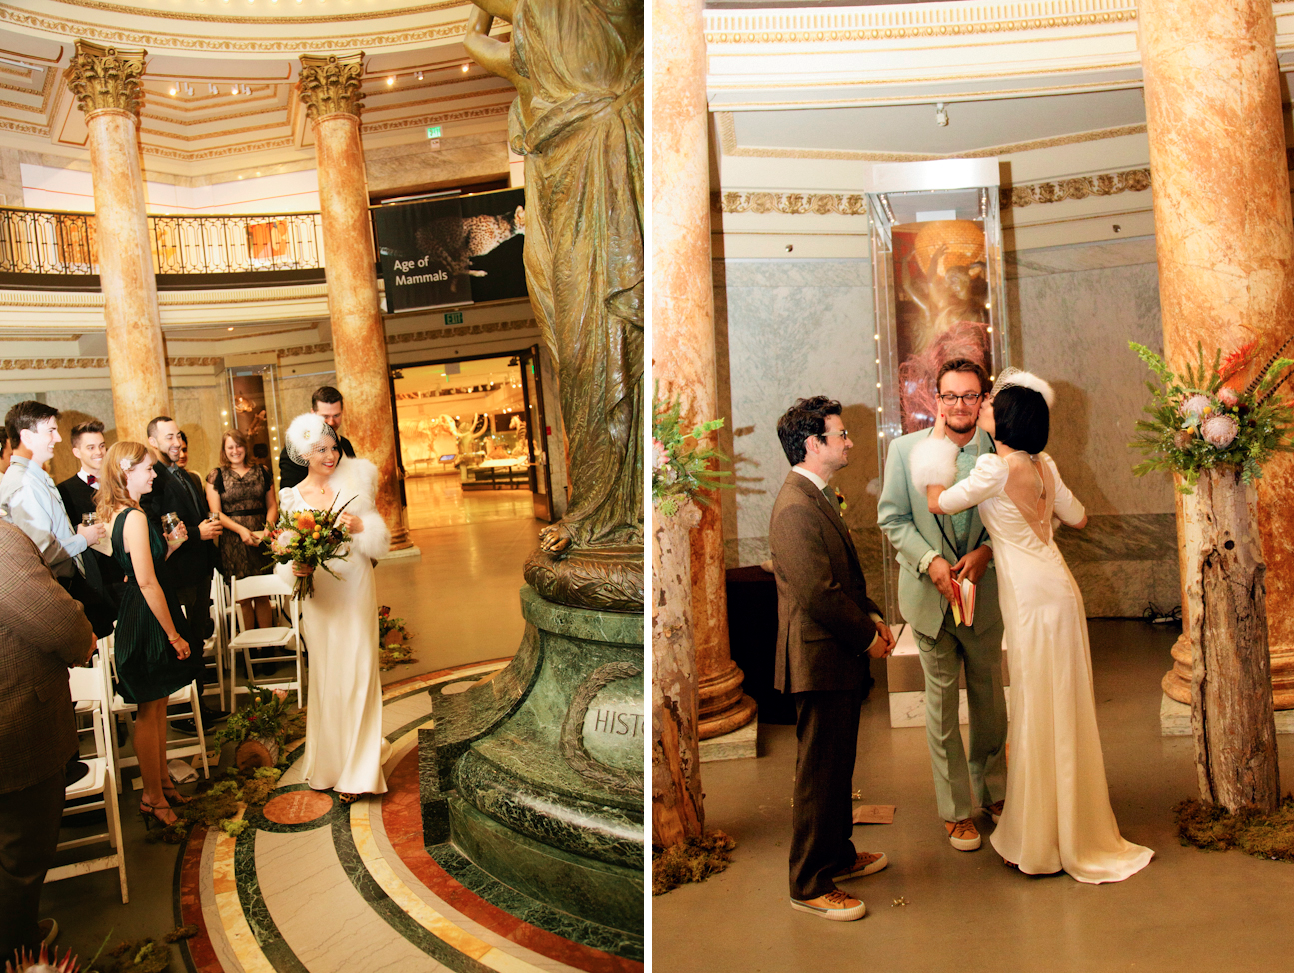 Retro-bride-and-groom-ceremony-vows-at-natural-history-museum.original